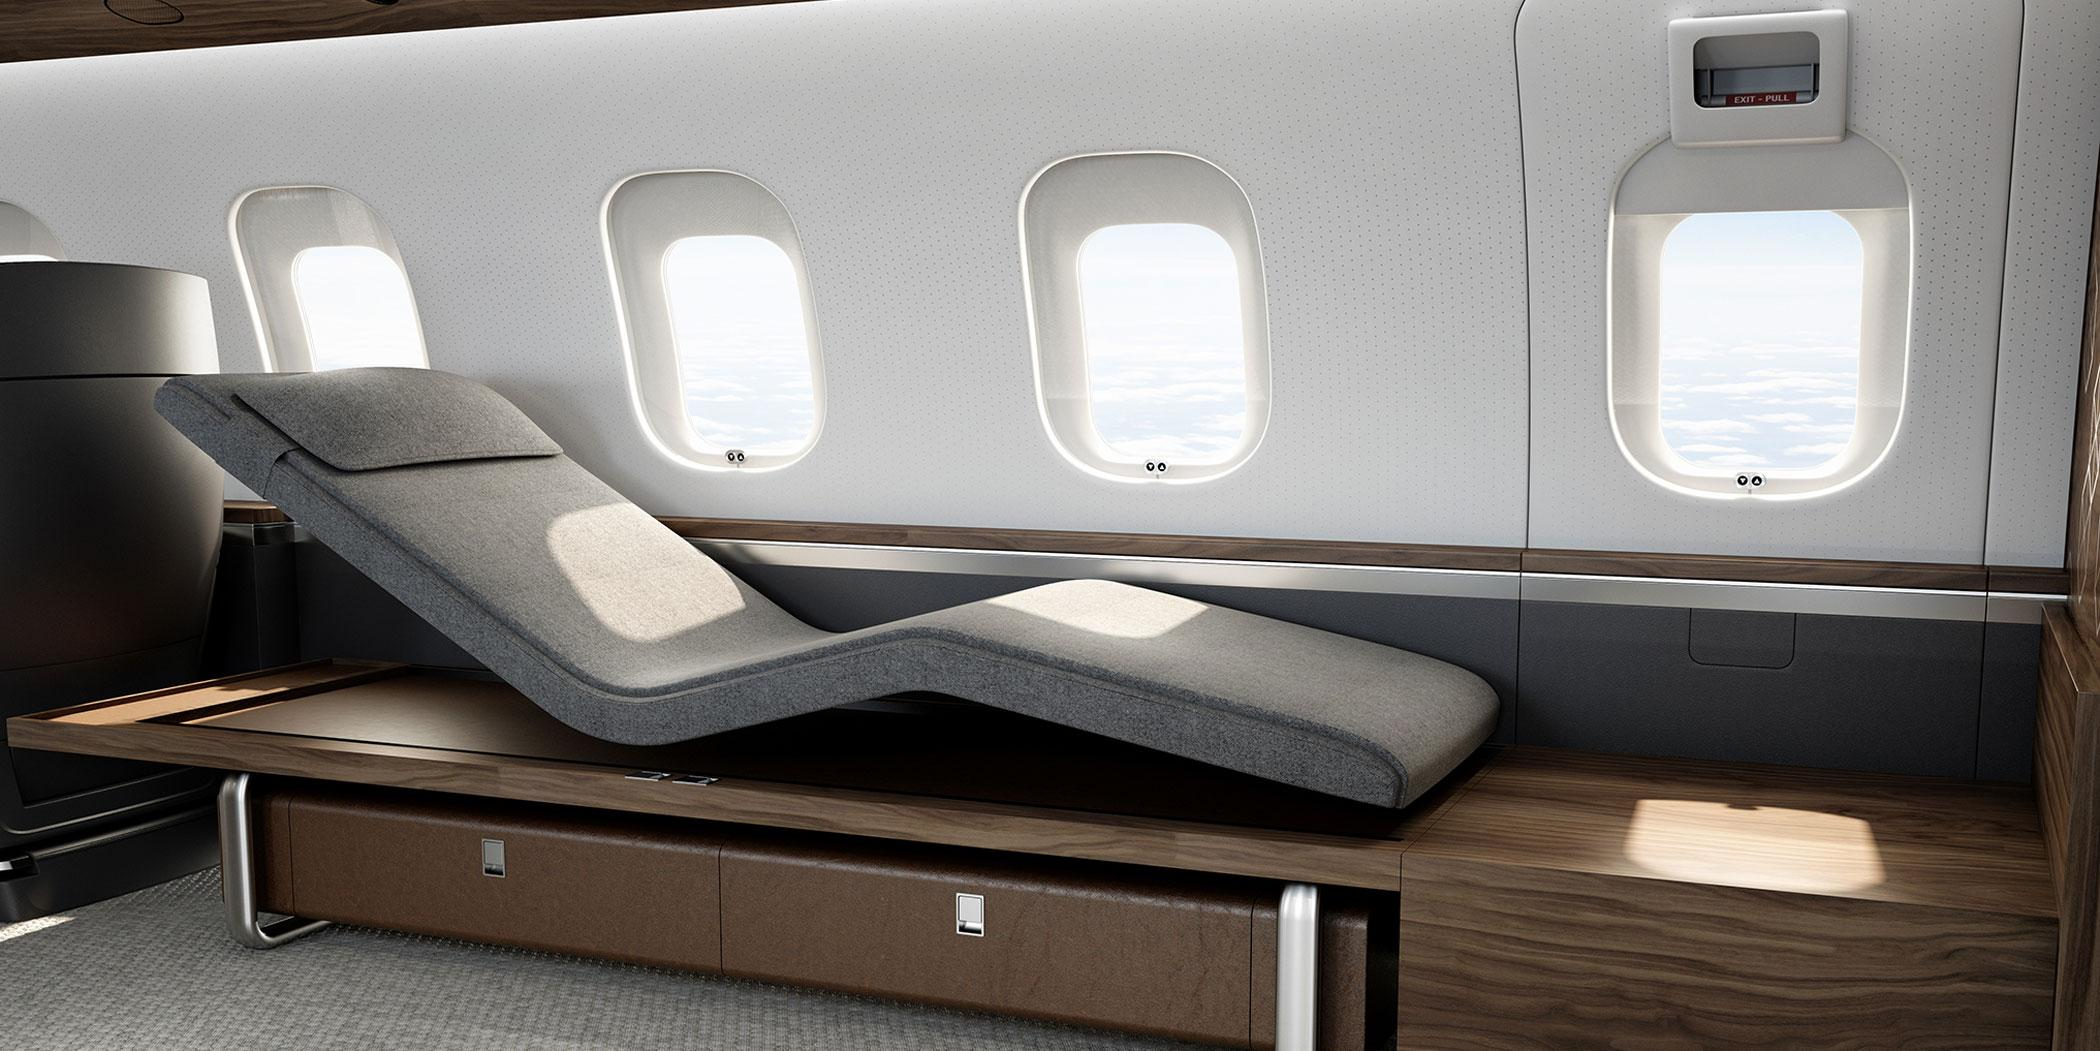 Bombardier's Nuage chaise lounge